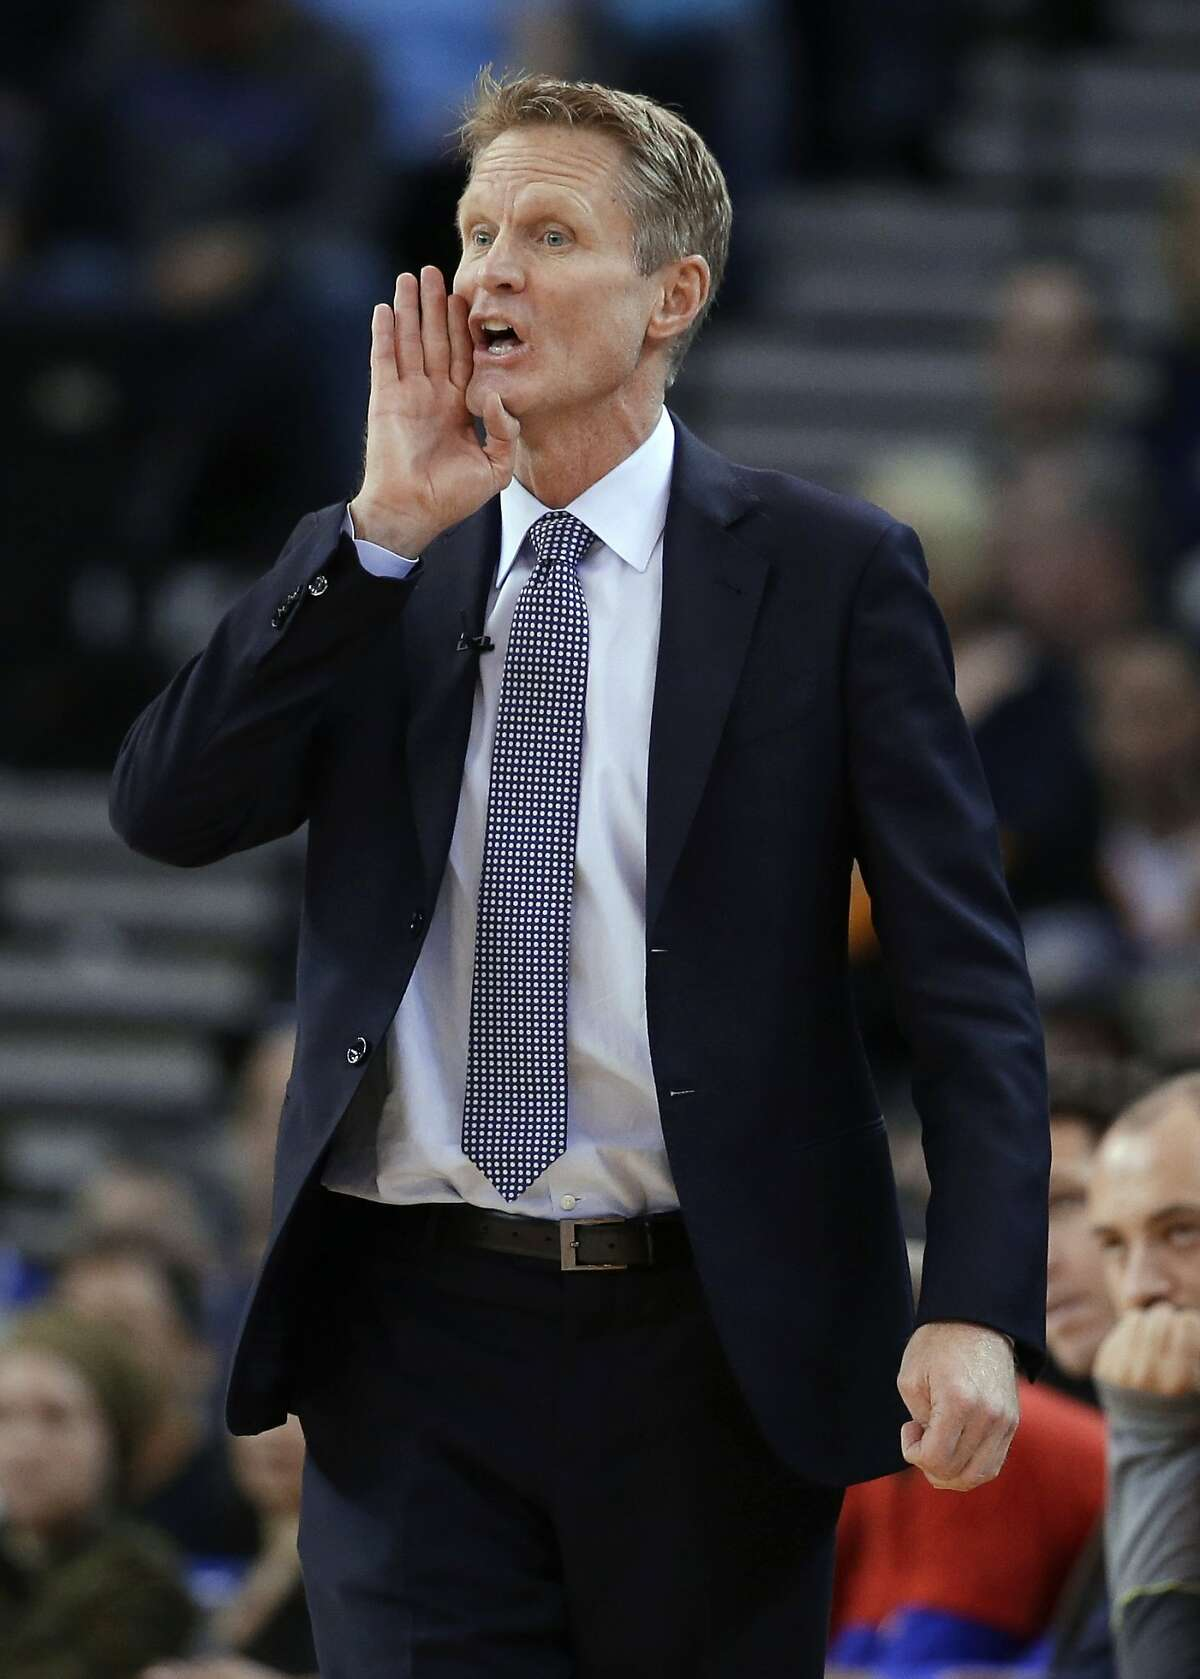 Golden State Warriors coach Steve Kerr shouts to his team during the first half of the Warriors' NBA basketball game against the Indiana Pacers on Friday, Jan. 22, 2016, in Oakland, Calif. (AP Photo/Marcio Jose Sanchez)